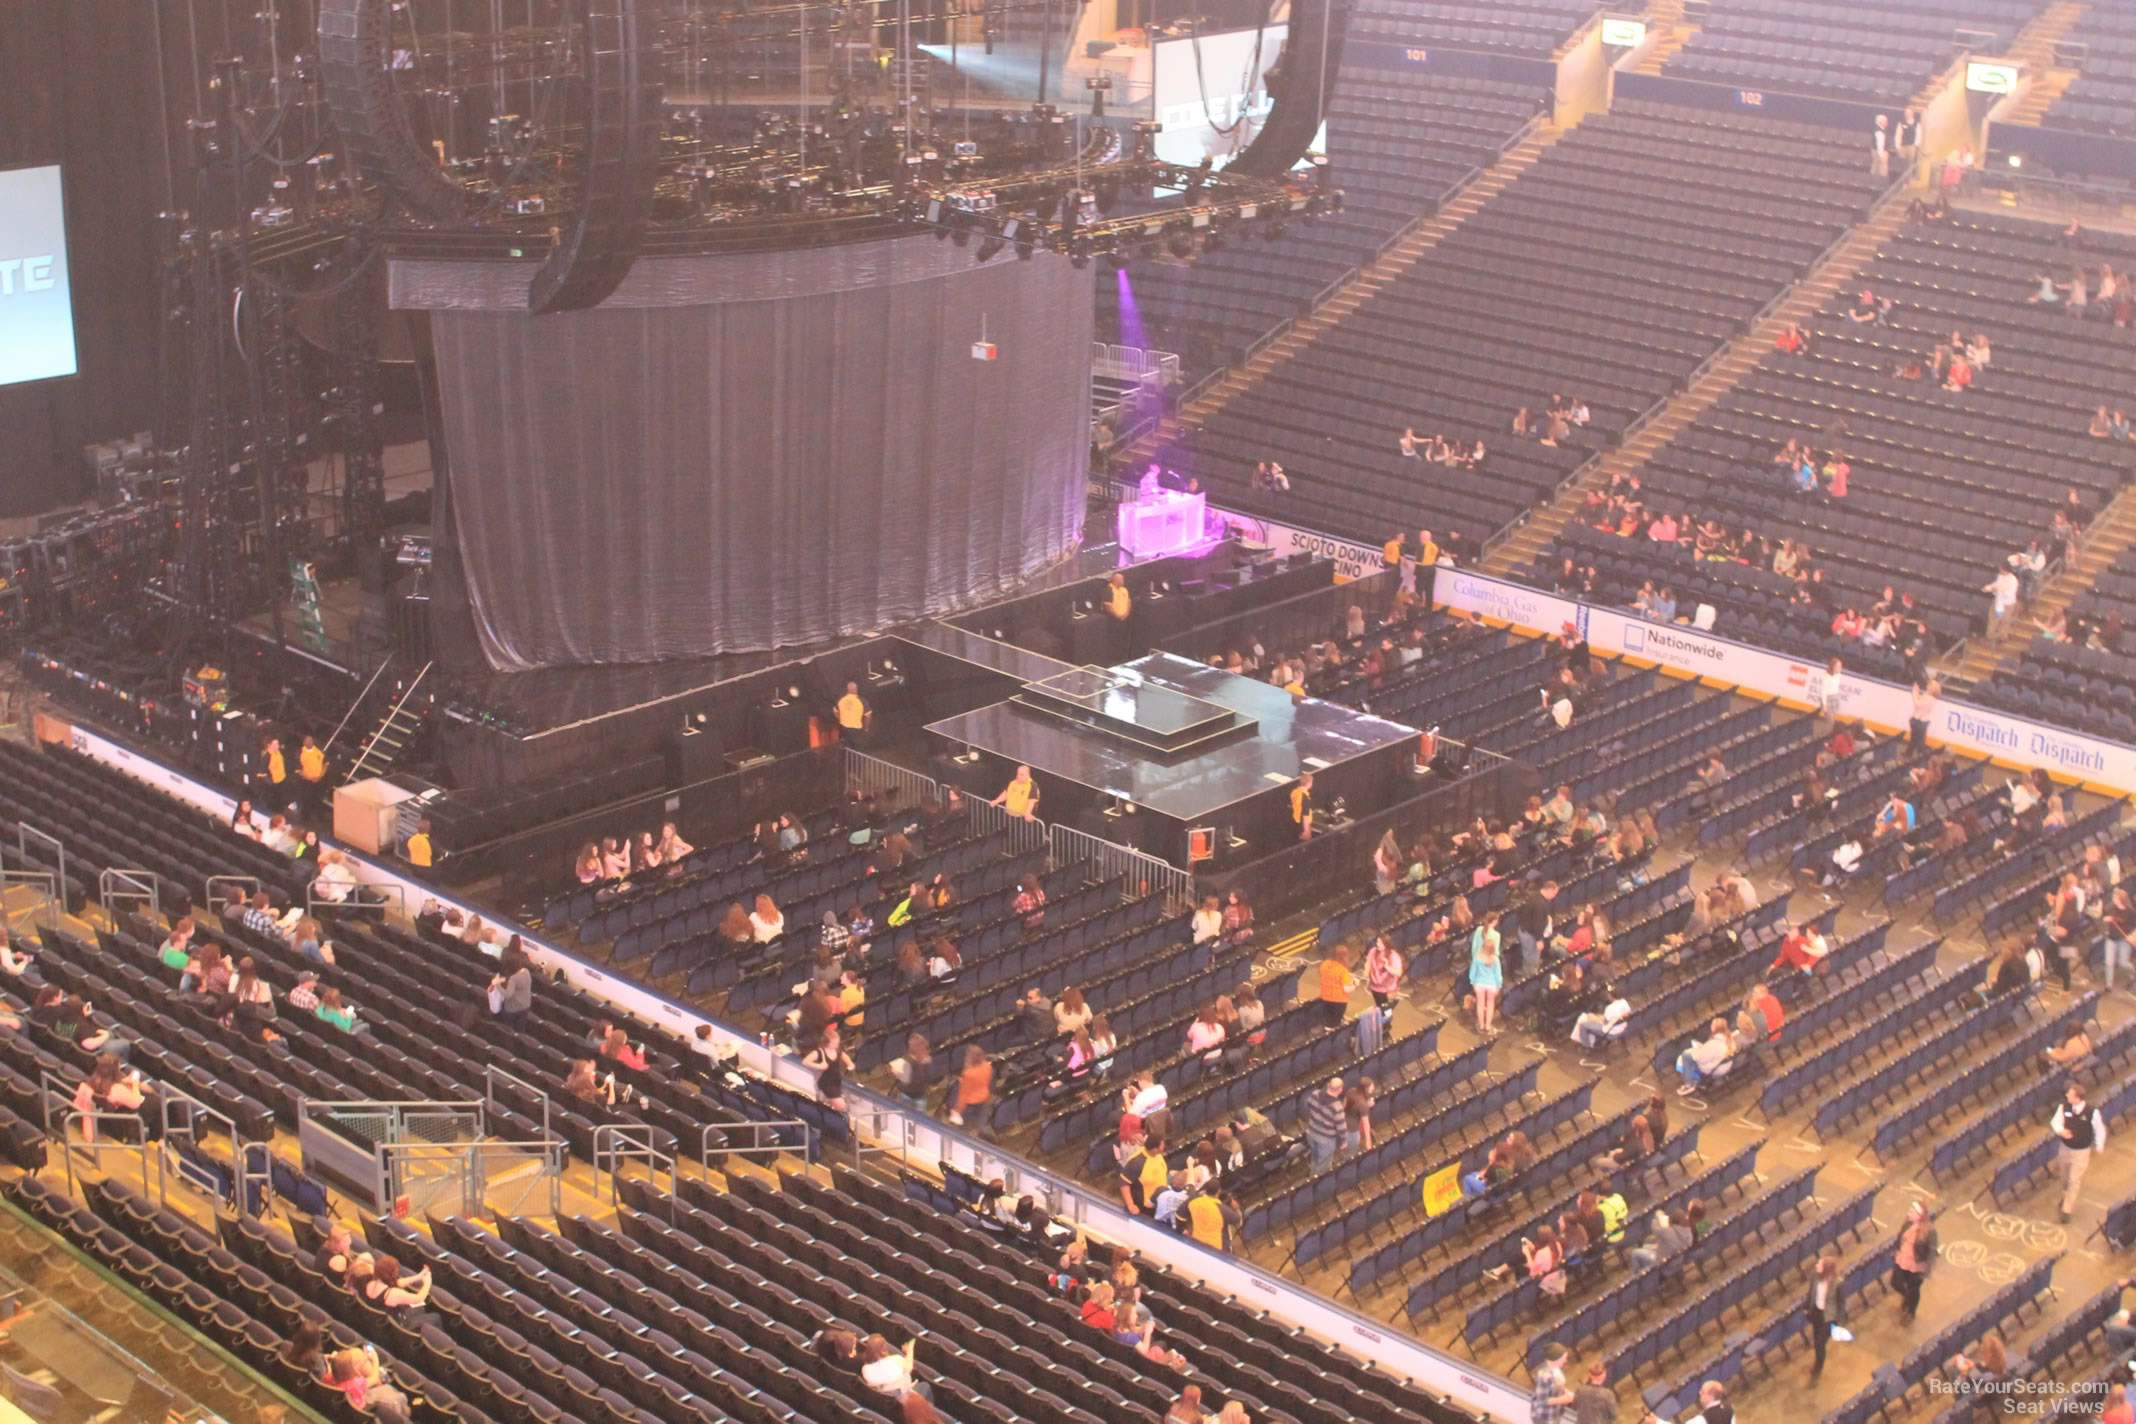 Best Seats At Nationwide Arena For Concert | Elcho Table